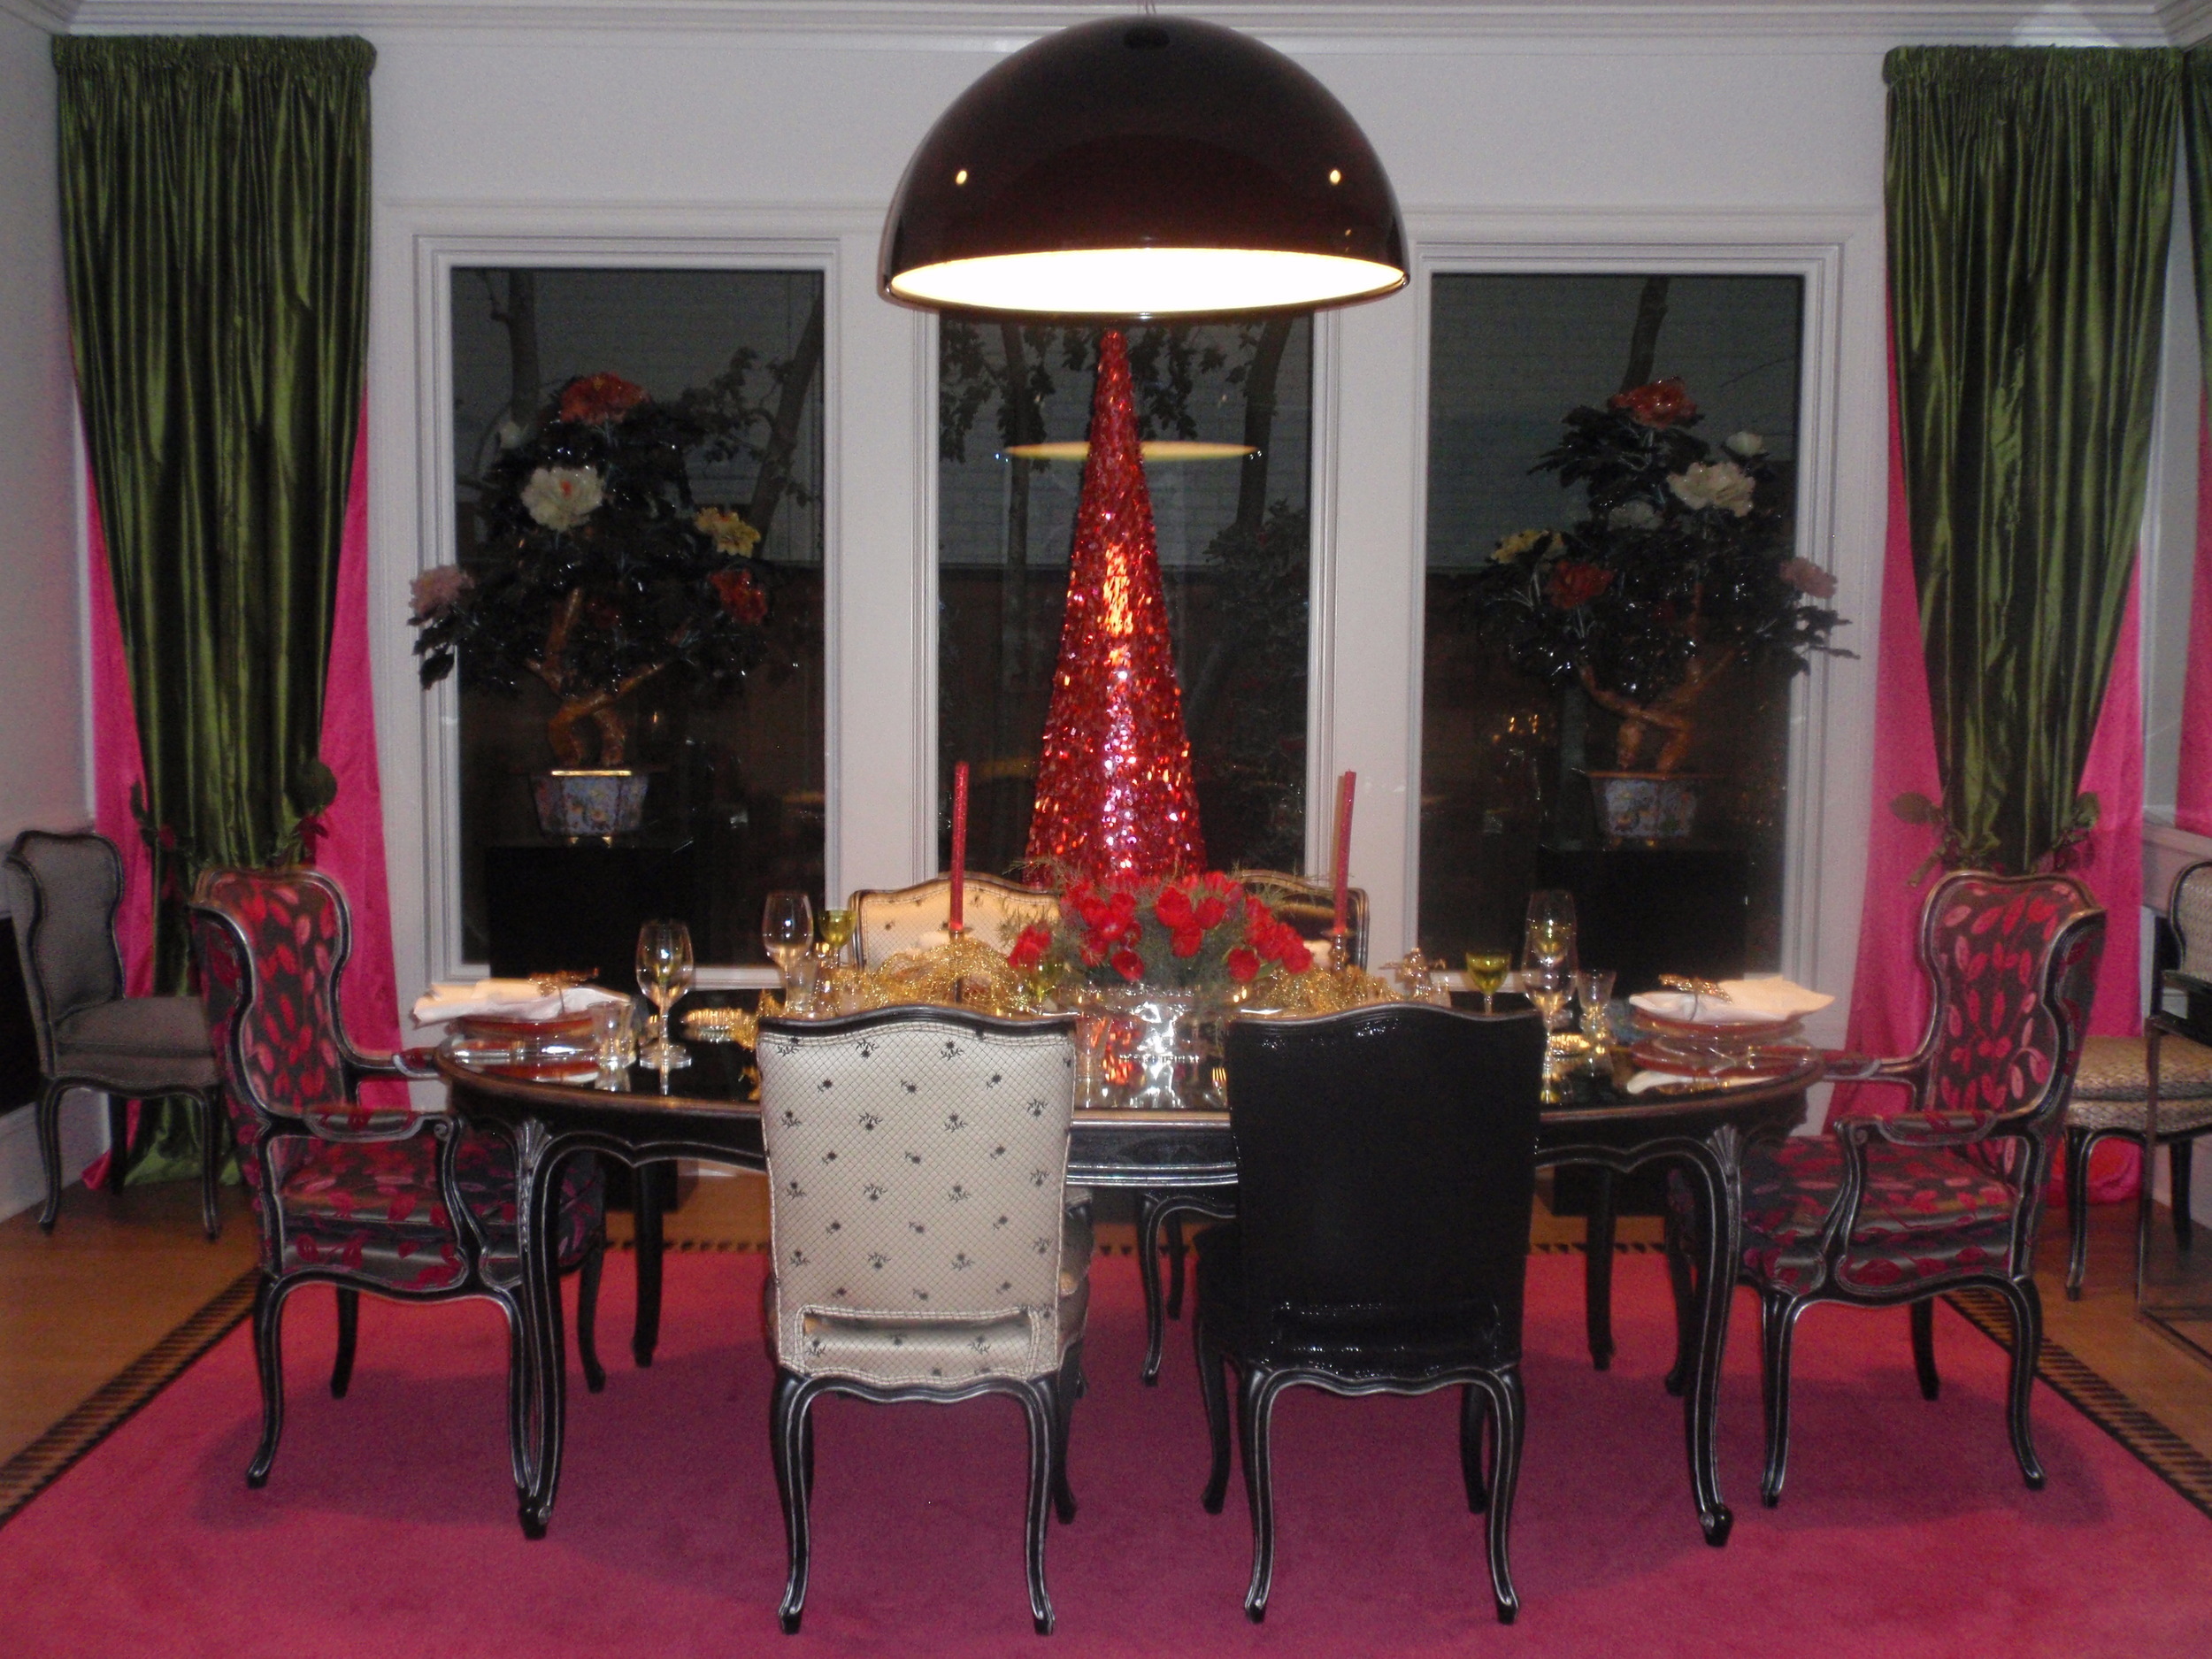 Dining room tree: a vintage 1960's shocking pink   display tree from Neiman Marcus